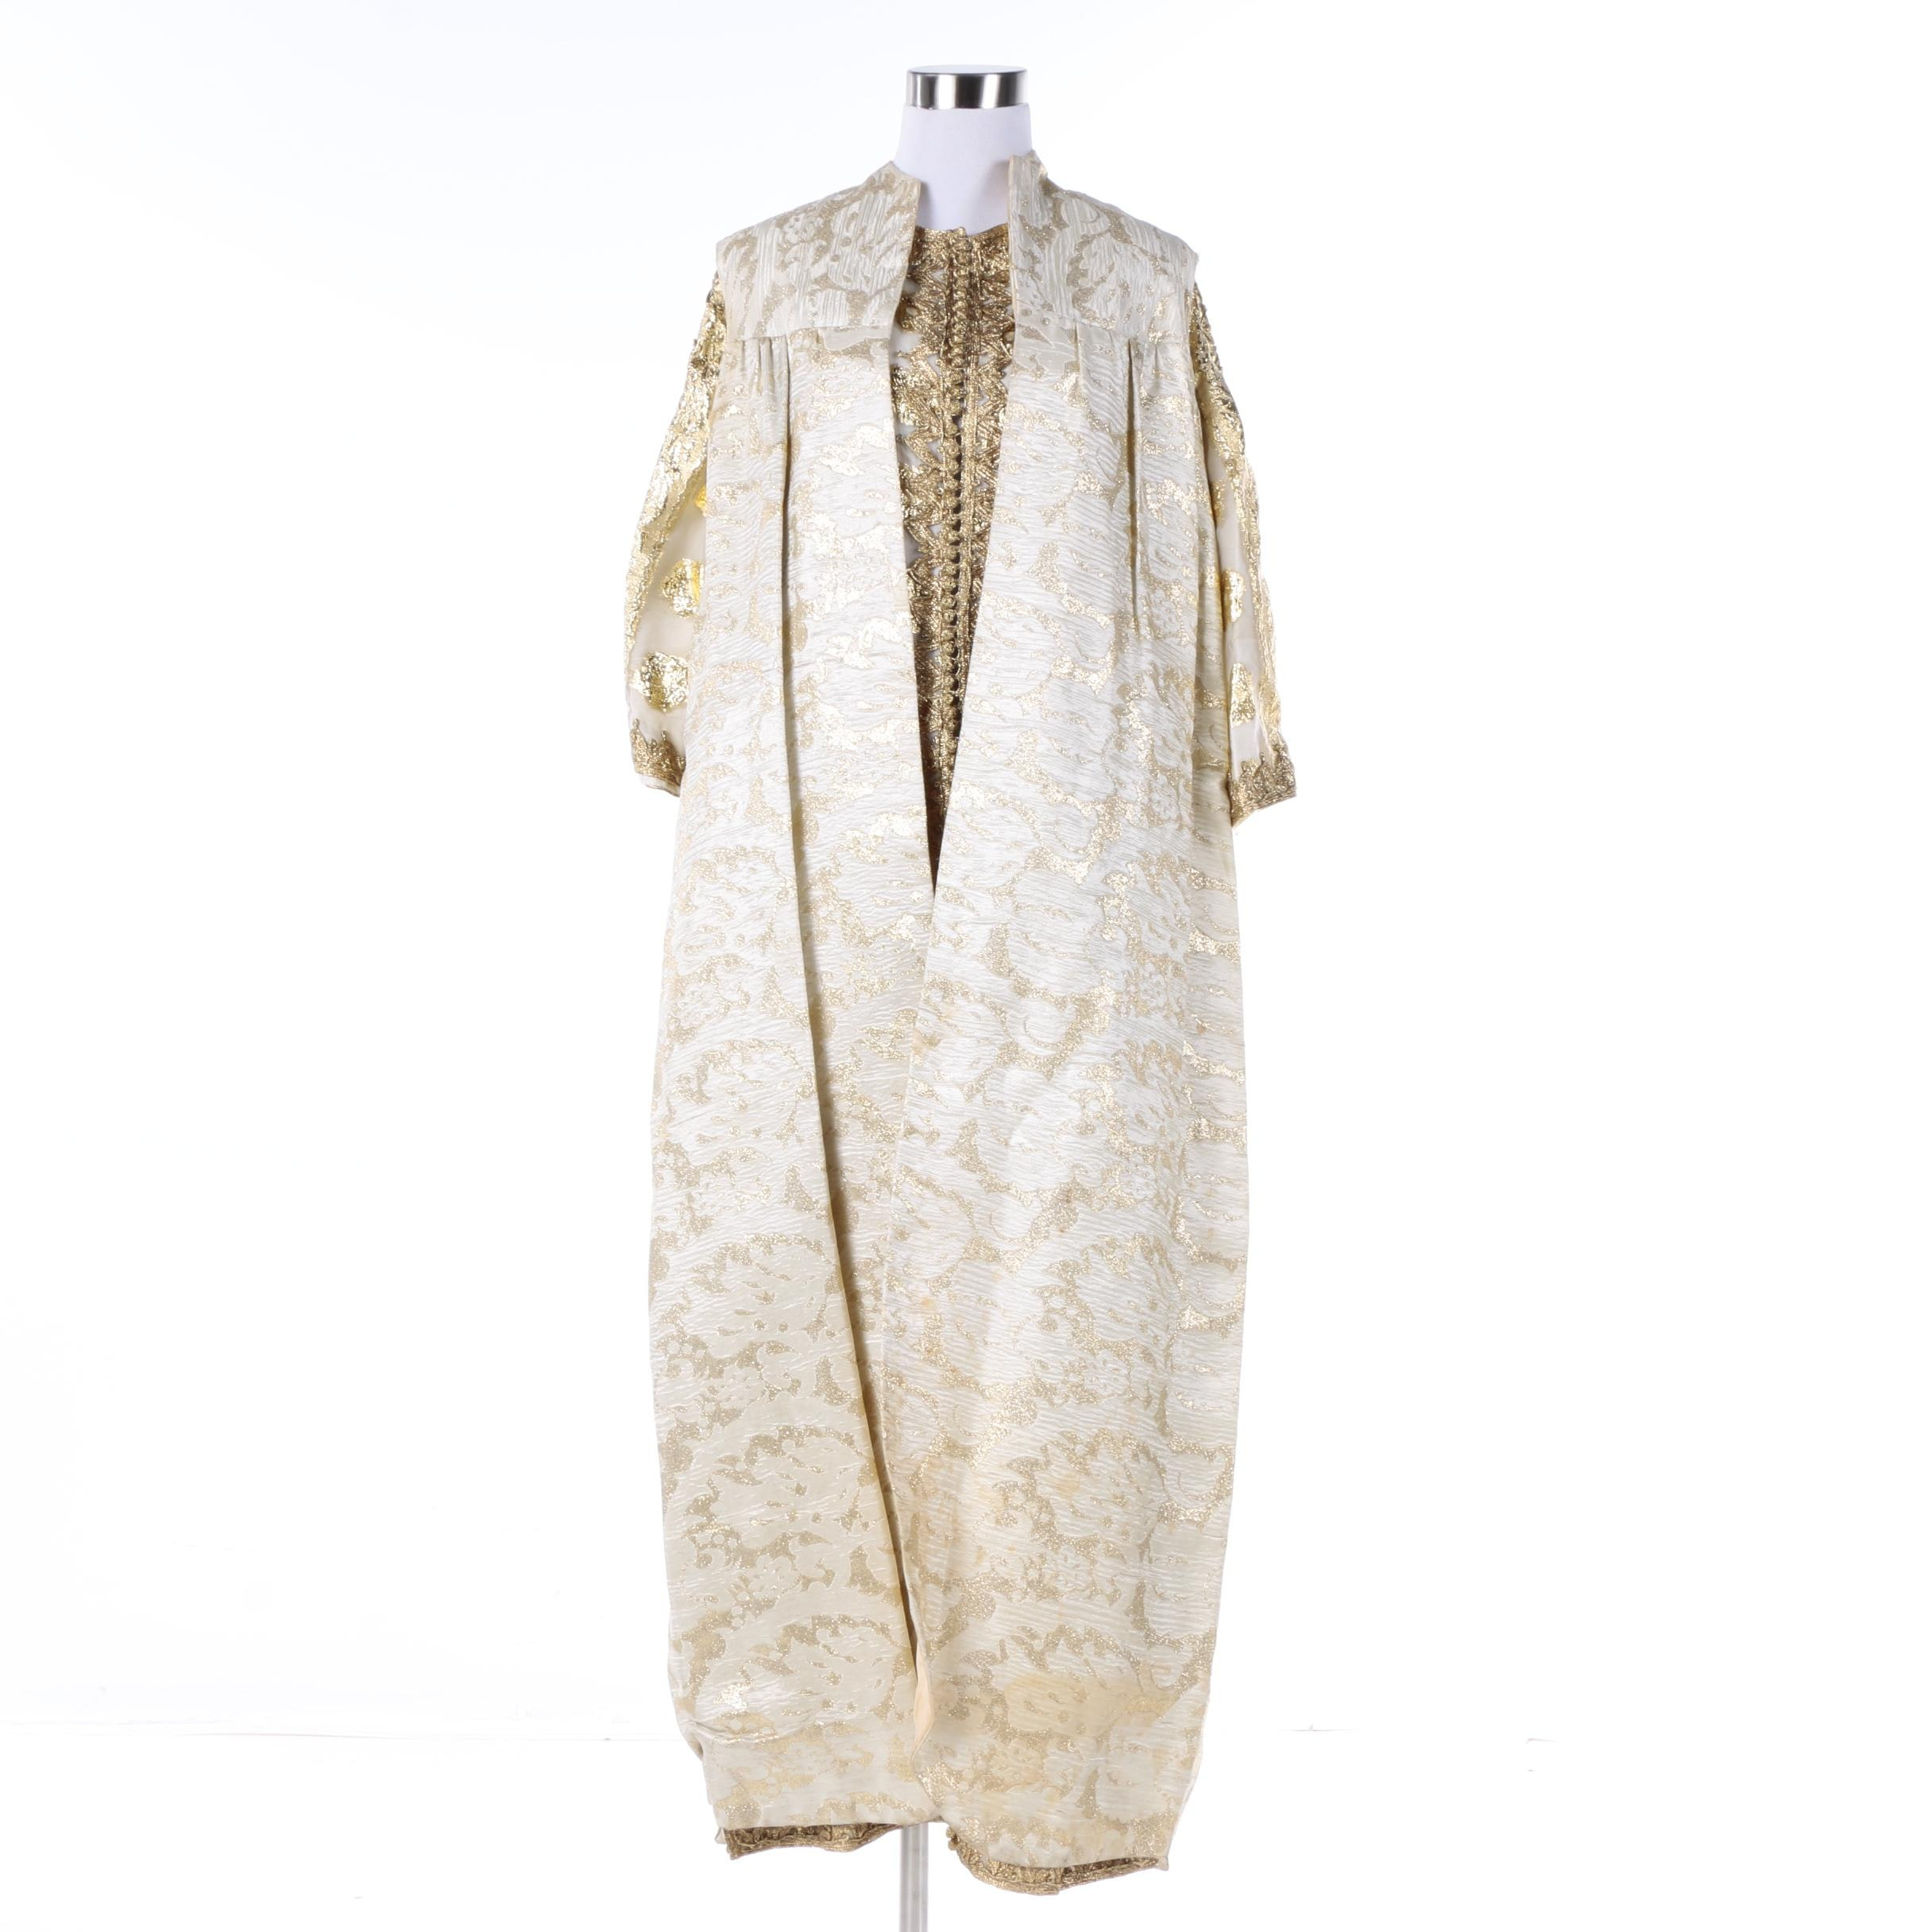 Vintage White and Golden Brocade Thobe Dress and Sleeveless Dress Coat